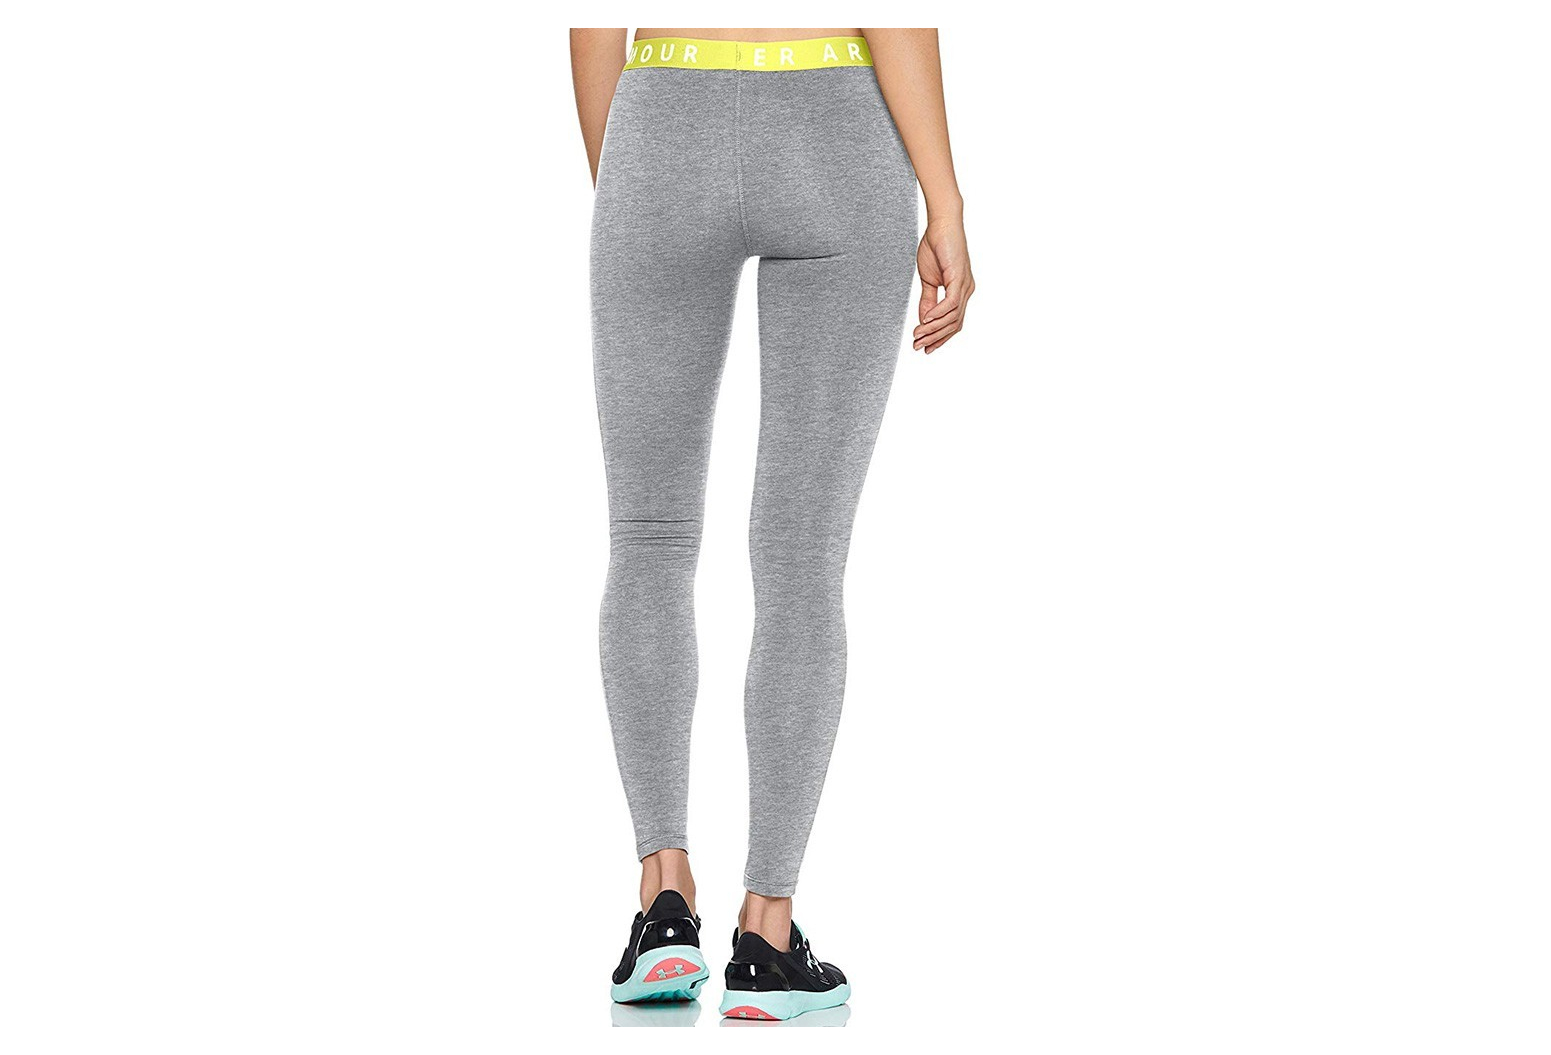 brand new purchase cheap sale uk Favorites Femme Legging Gris Under Armour